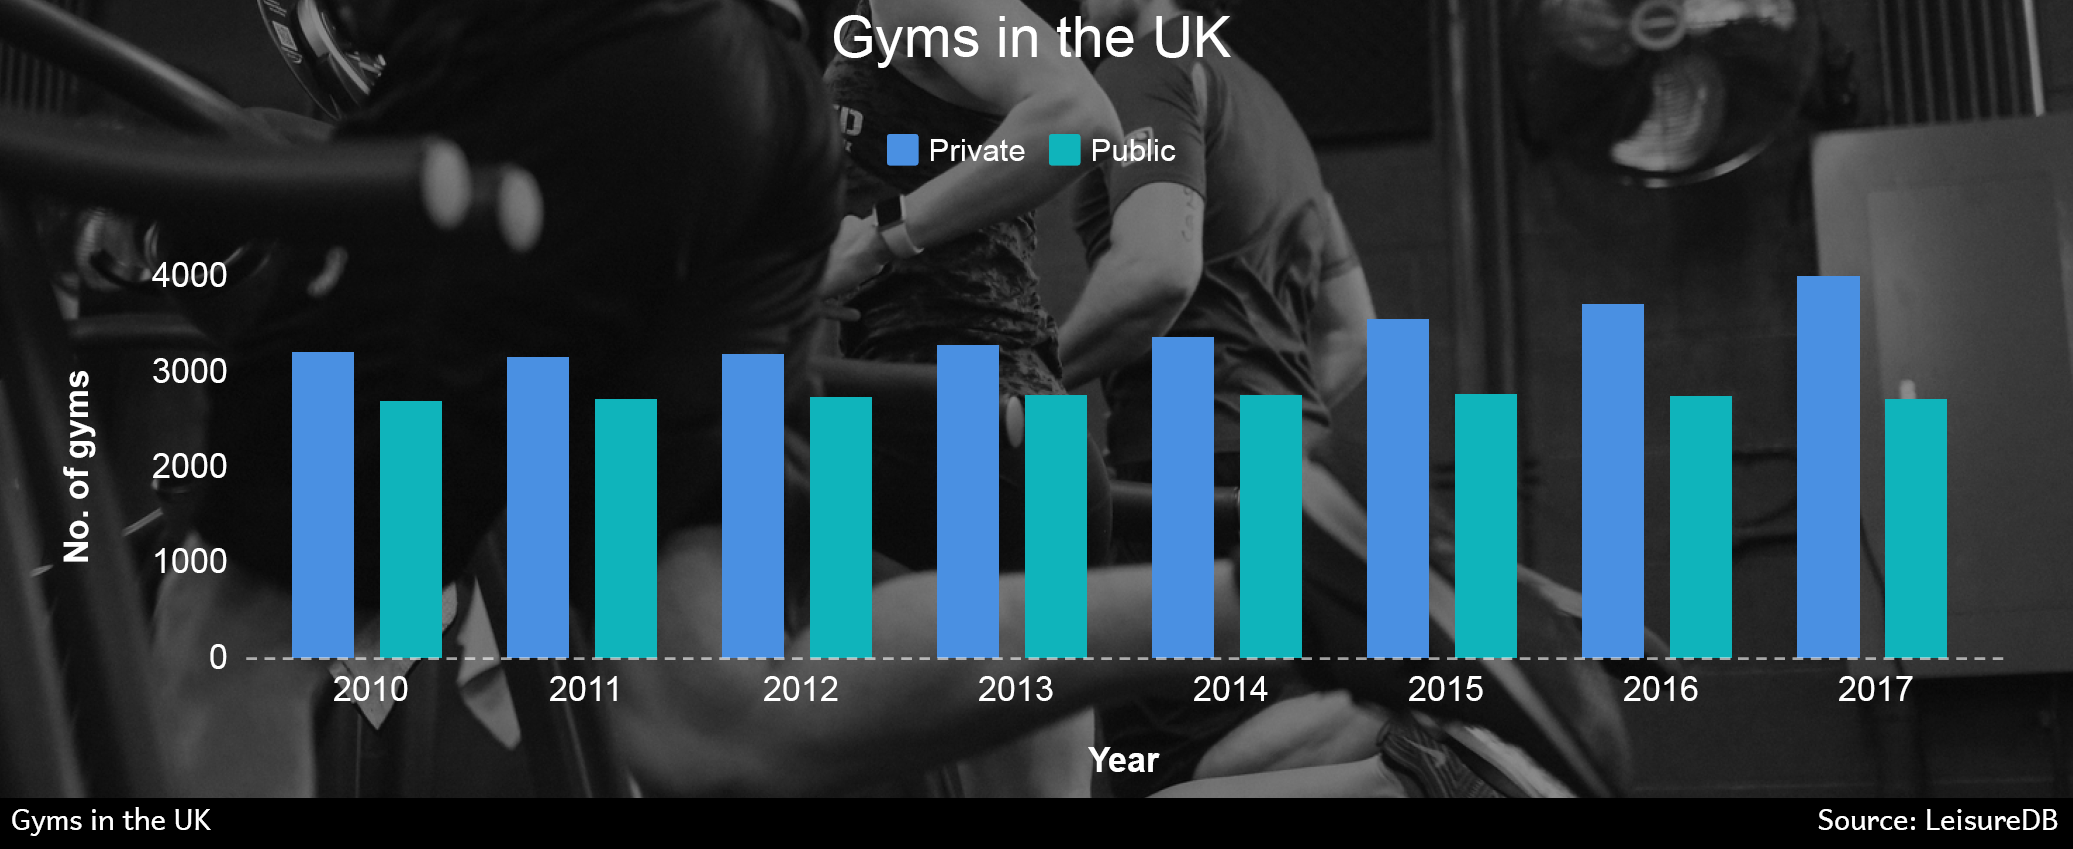 Gyms in the UK